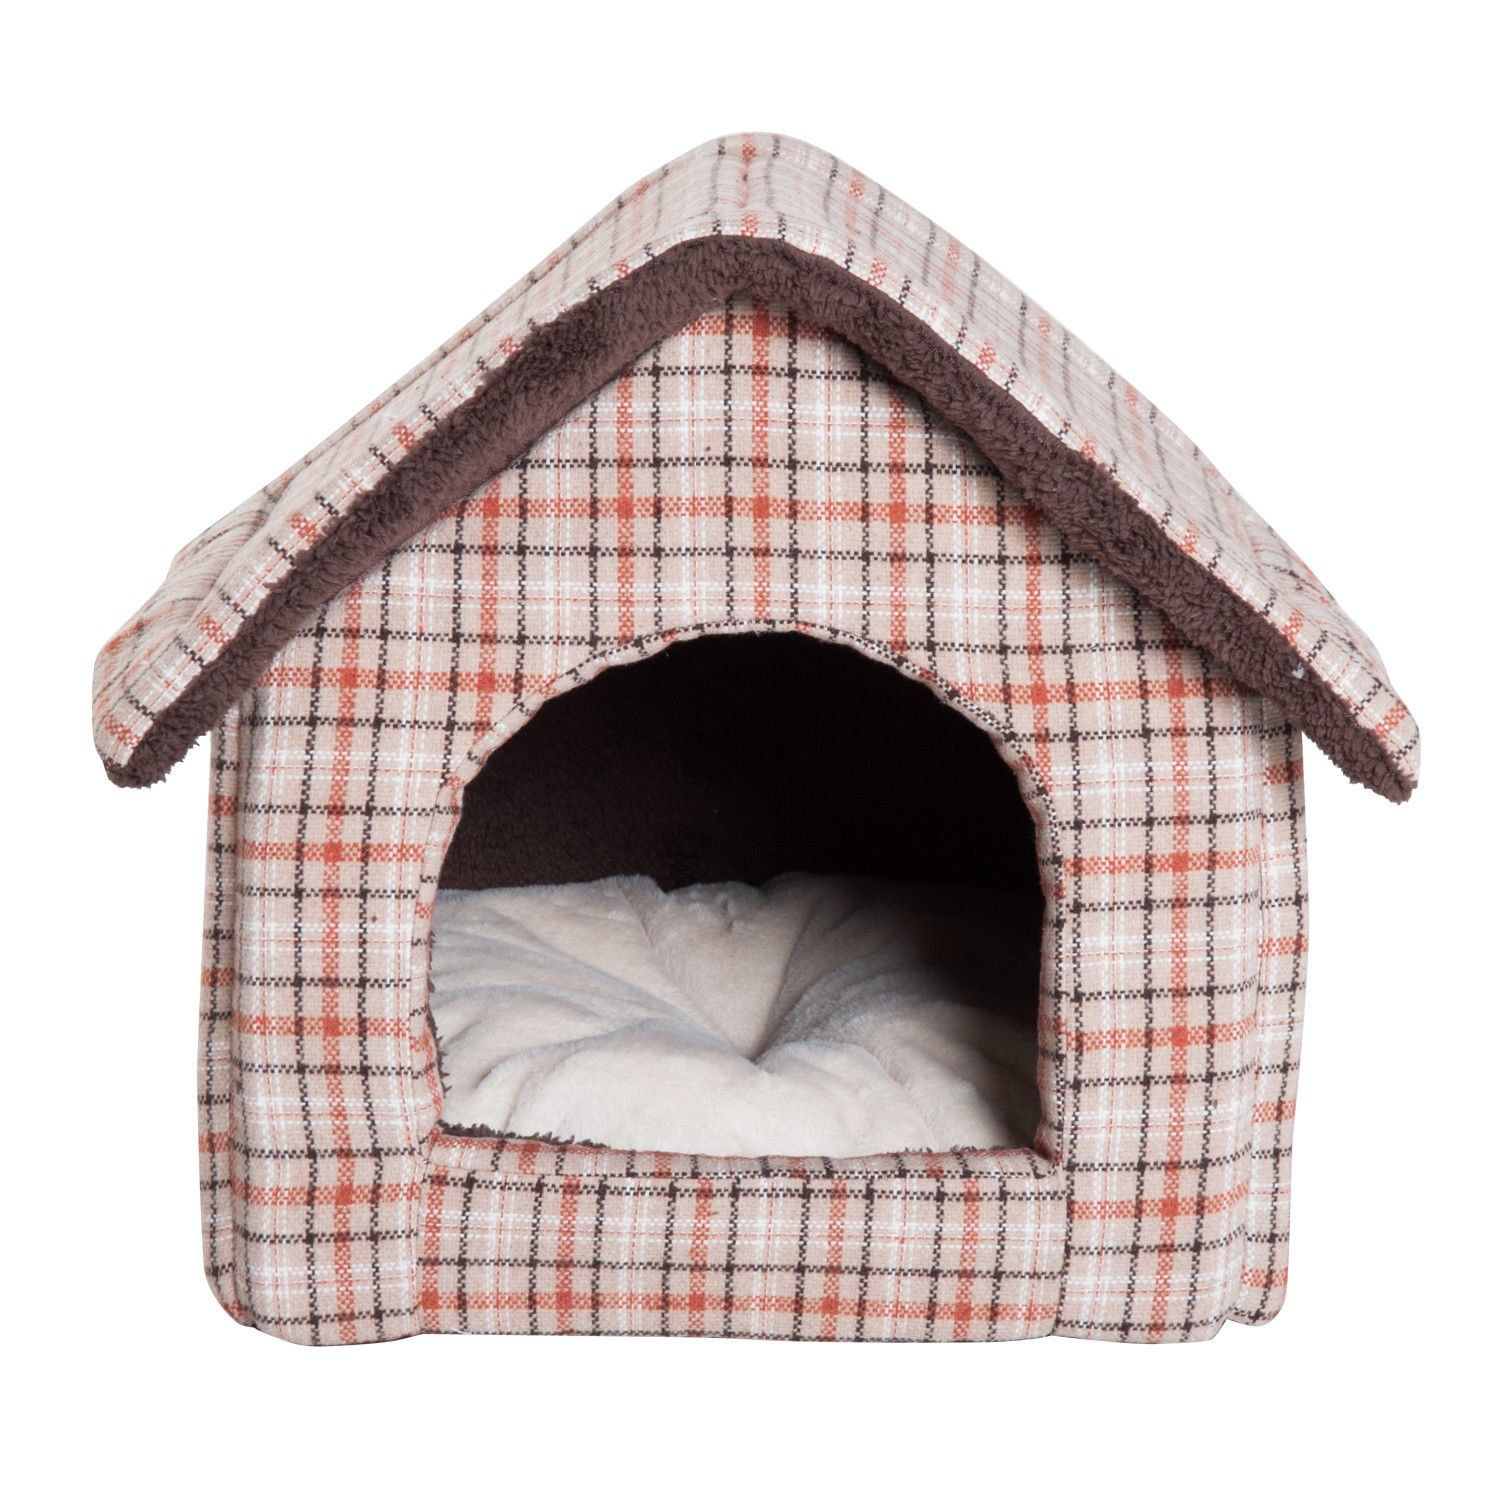 Pawhut Portable Indoor Soft Fabric Cat Dog House With Removable Cushion Medium Brown Plaid Click On The Image For Additional D Bird House Cat House Dog House